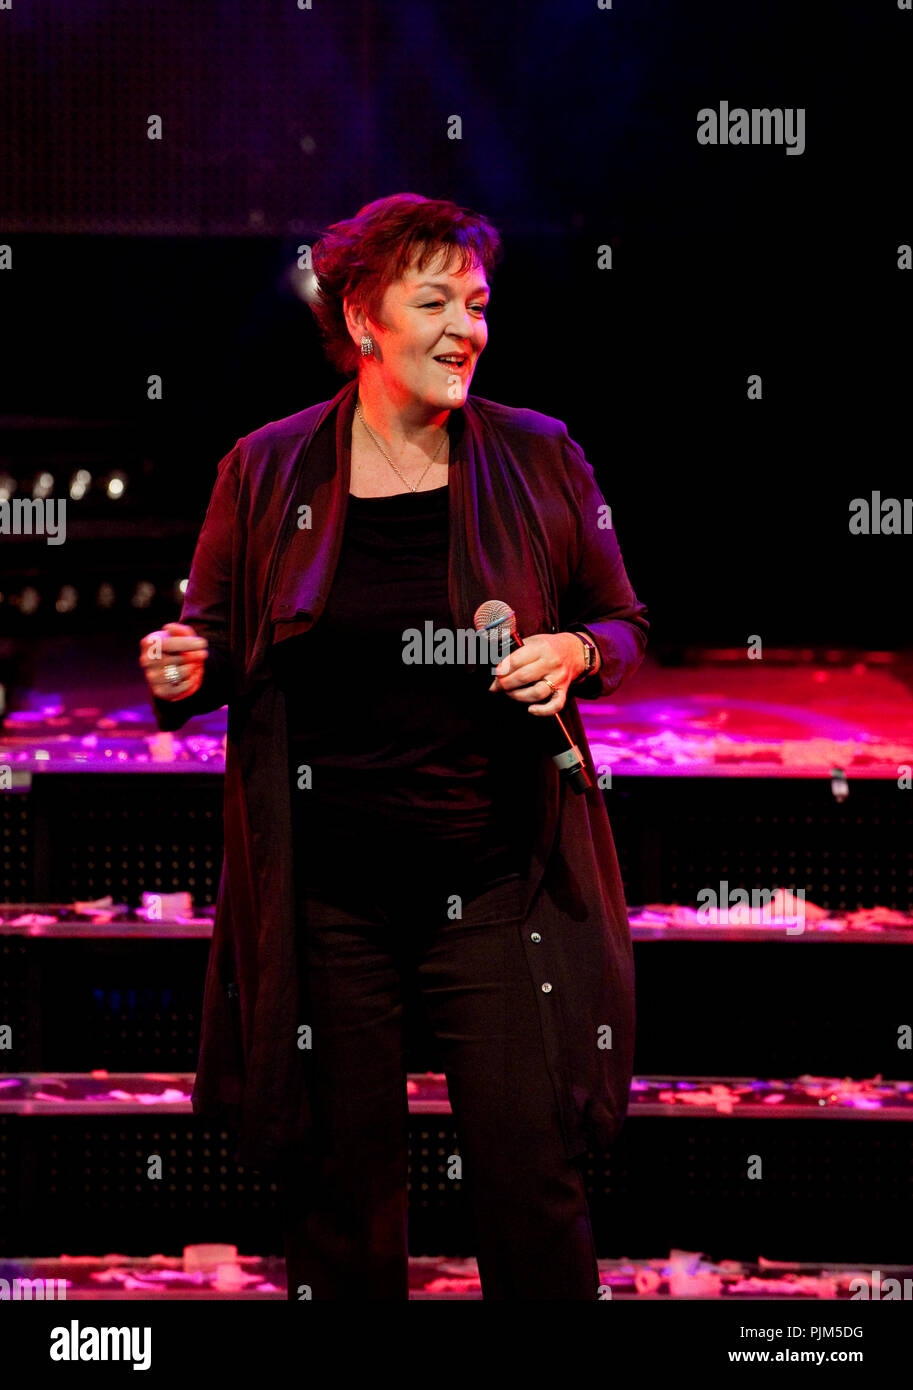 An excerpt of the musical No Nonsense, Never Give Up On The Heart at the Vlaamse Musicalprijzen ceremony (Belgium, 28/09/2010) - Stock Image